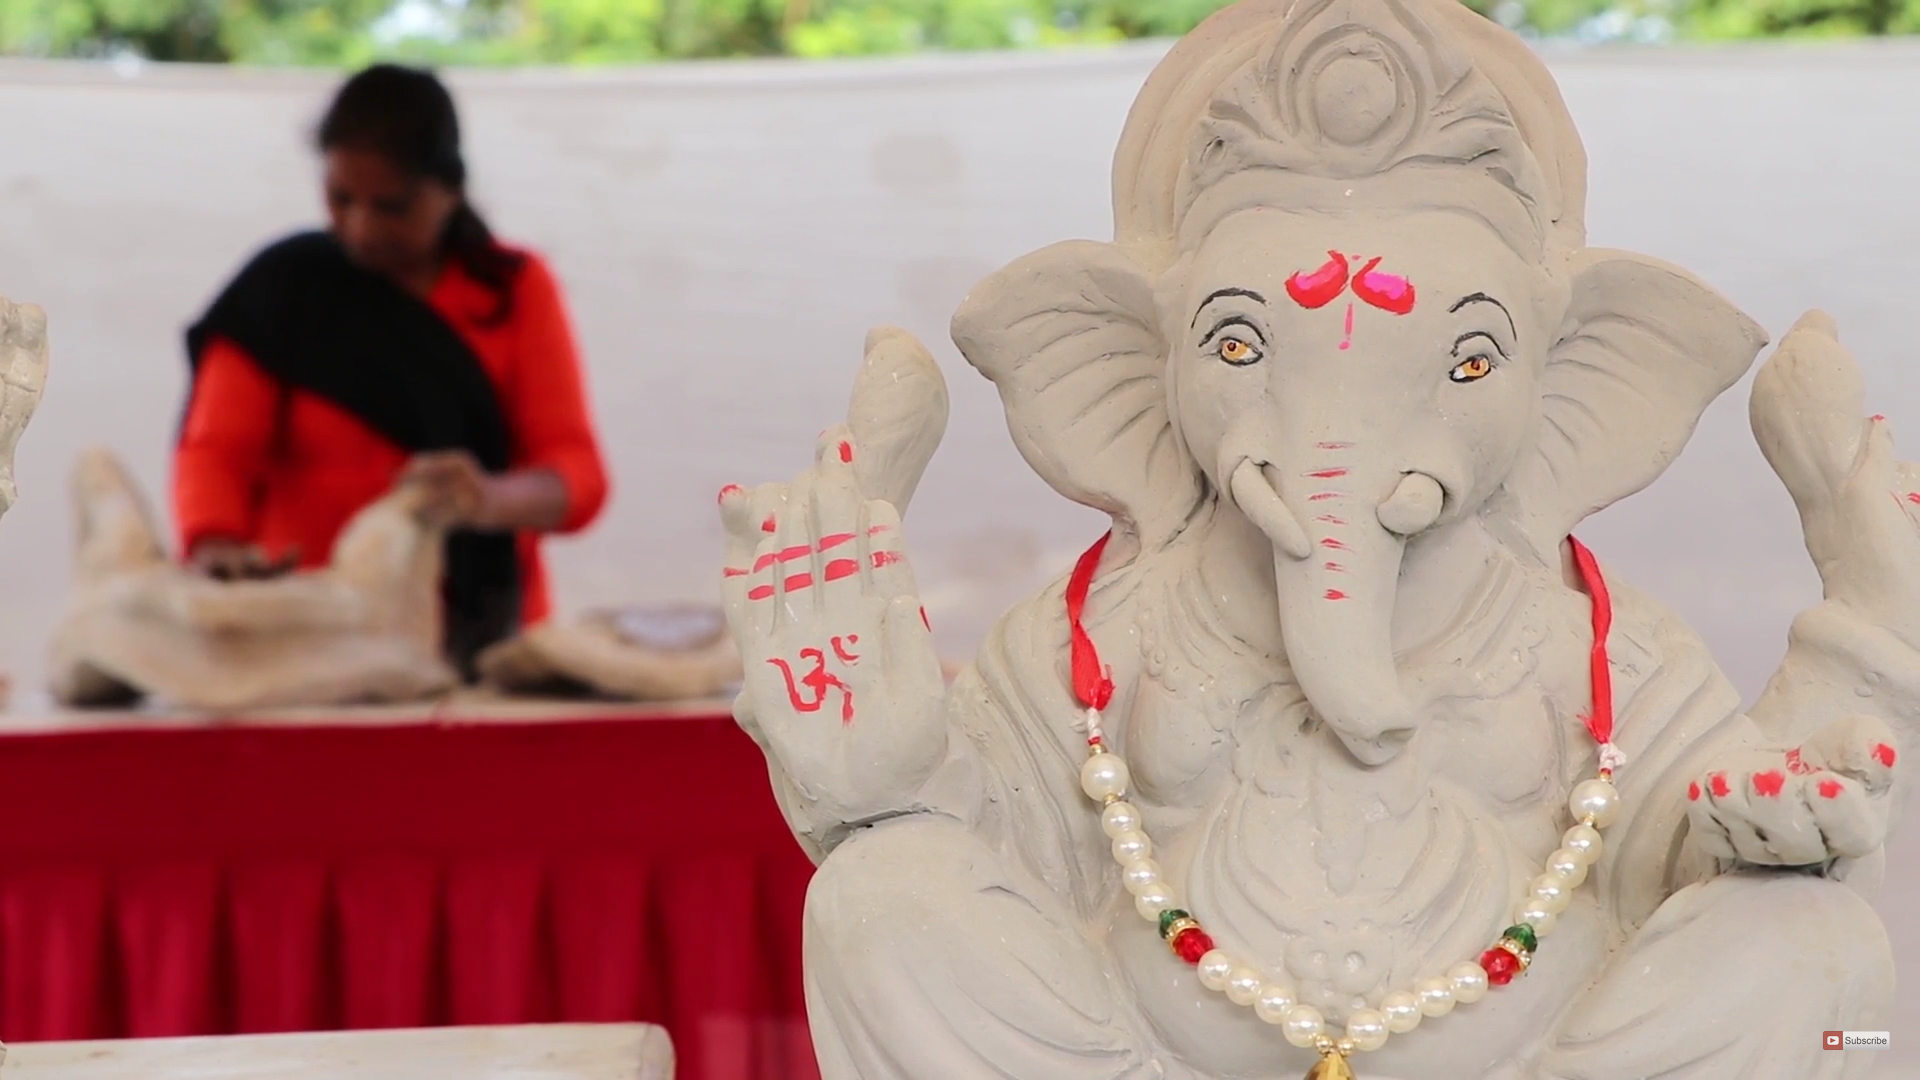 Eco-friendly Ganesh Utsav - an Initiative by Surat Municipal Corporation